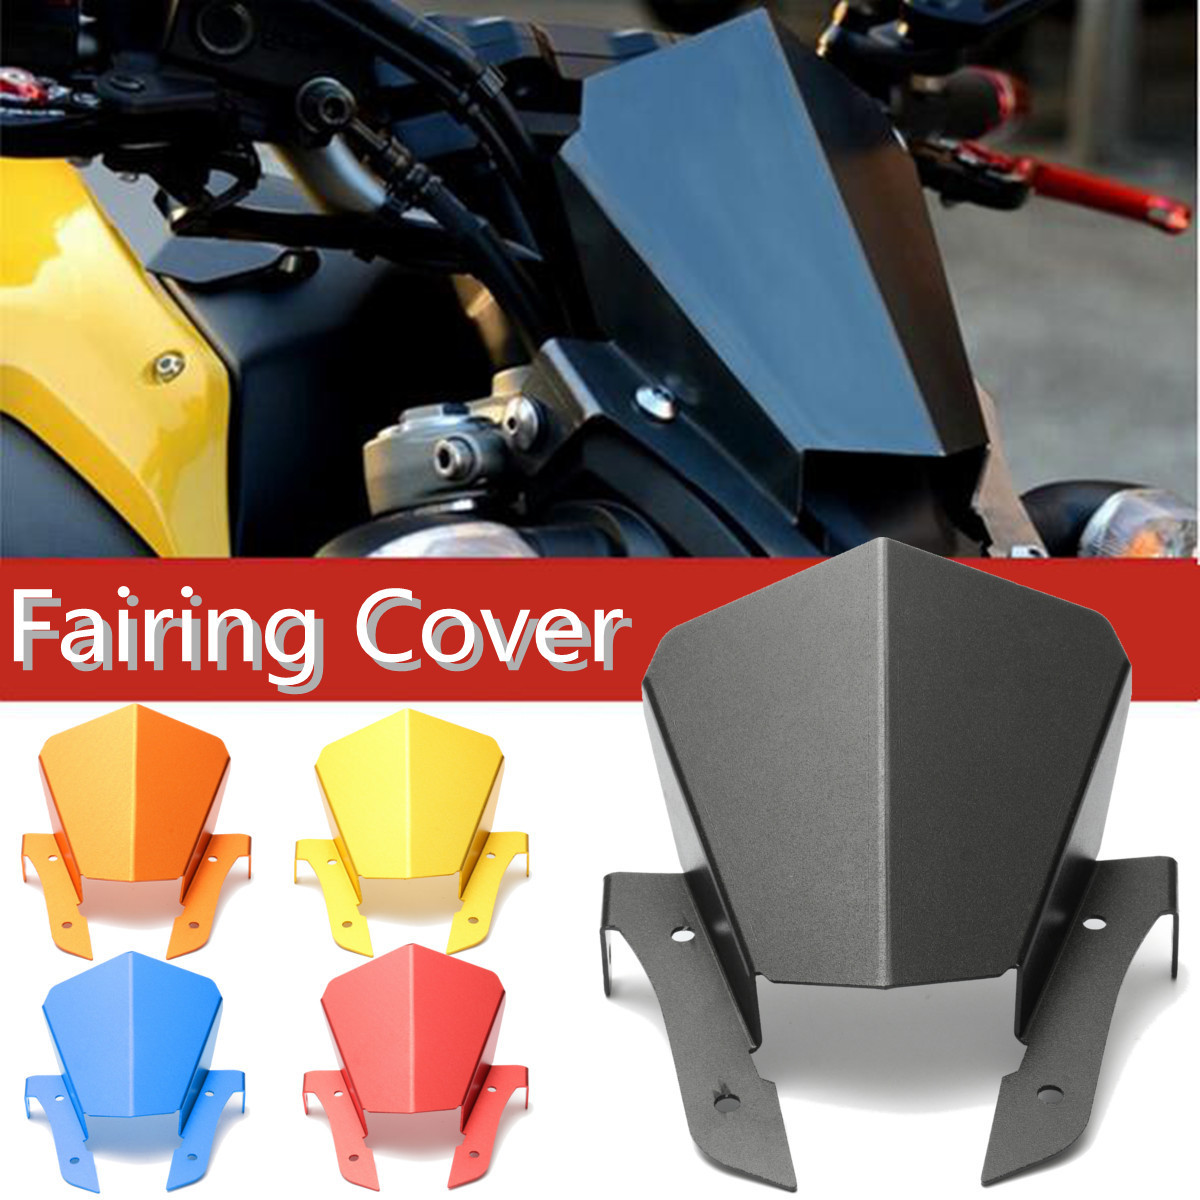 Front Upper Headlight Panel Fairing Mount Cover For Yamaha MT-07 FZ-07 14-16